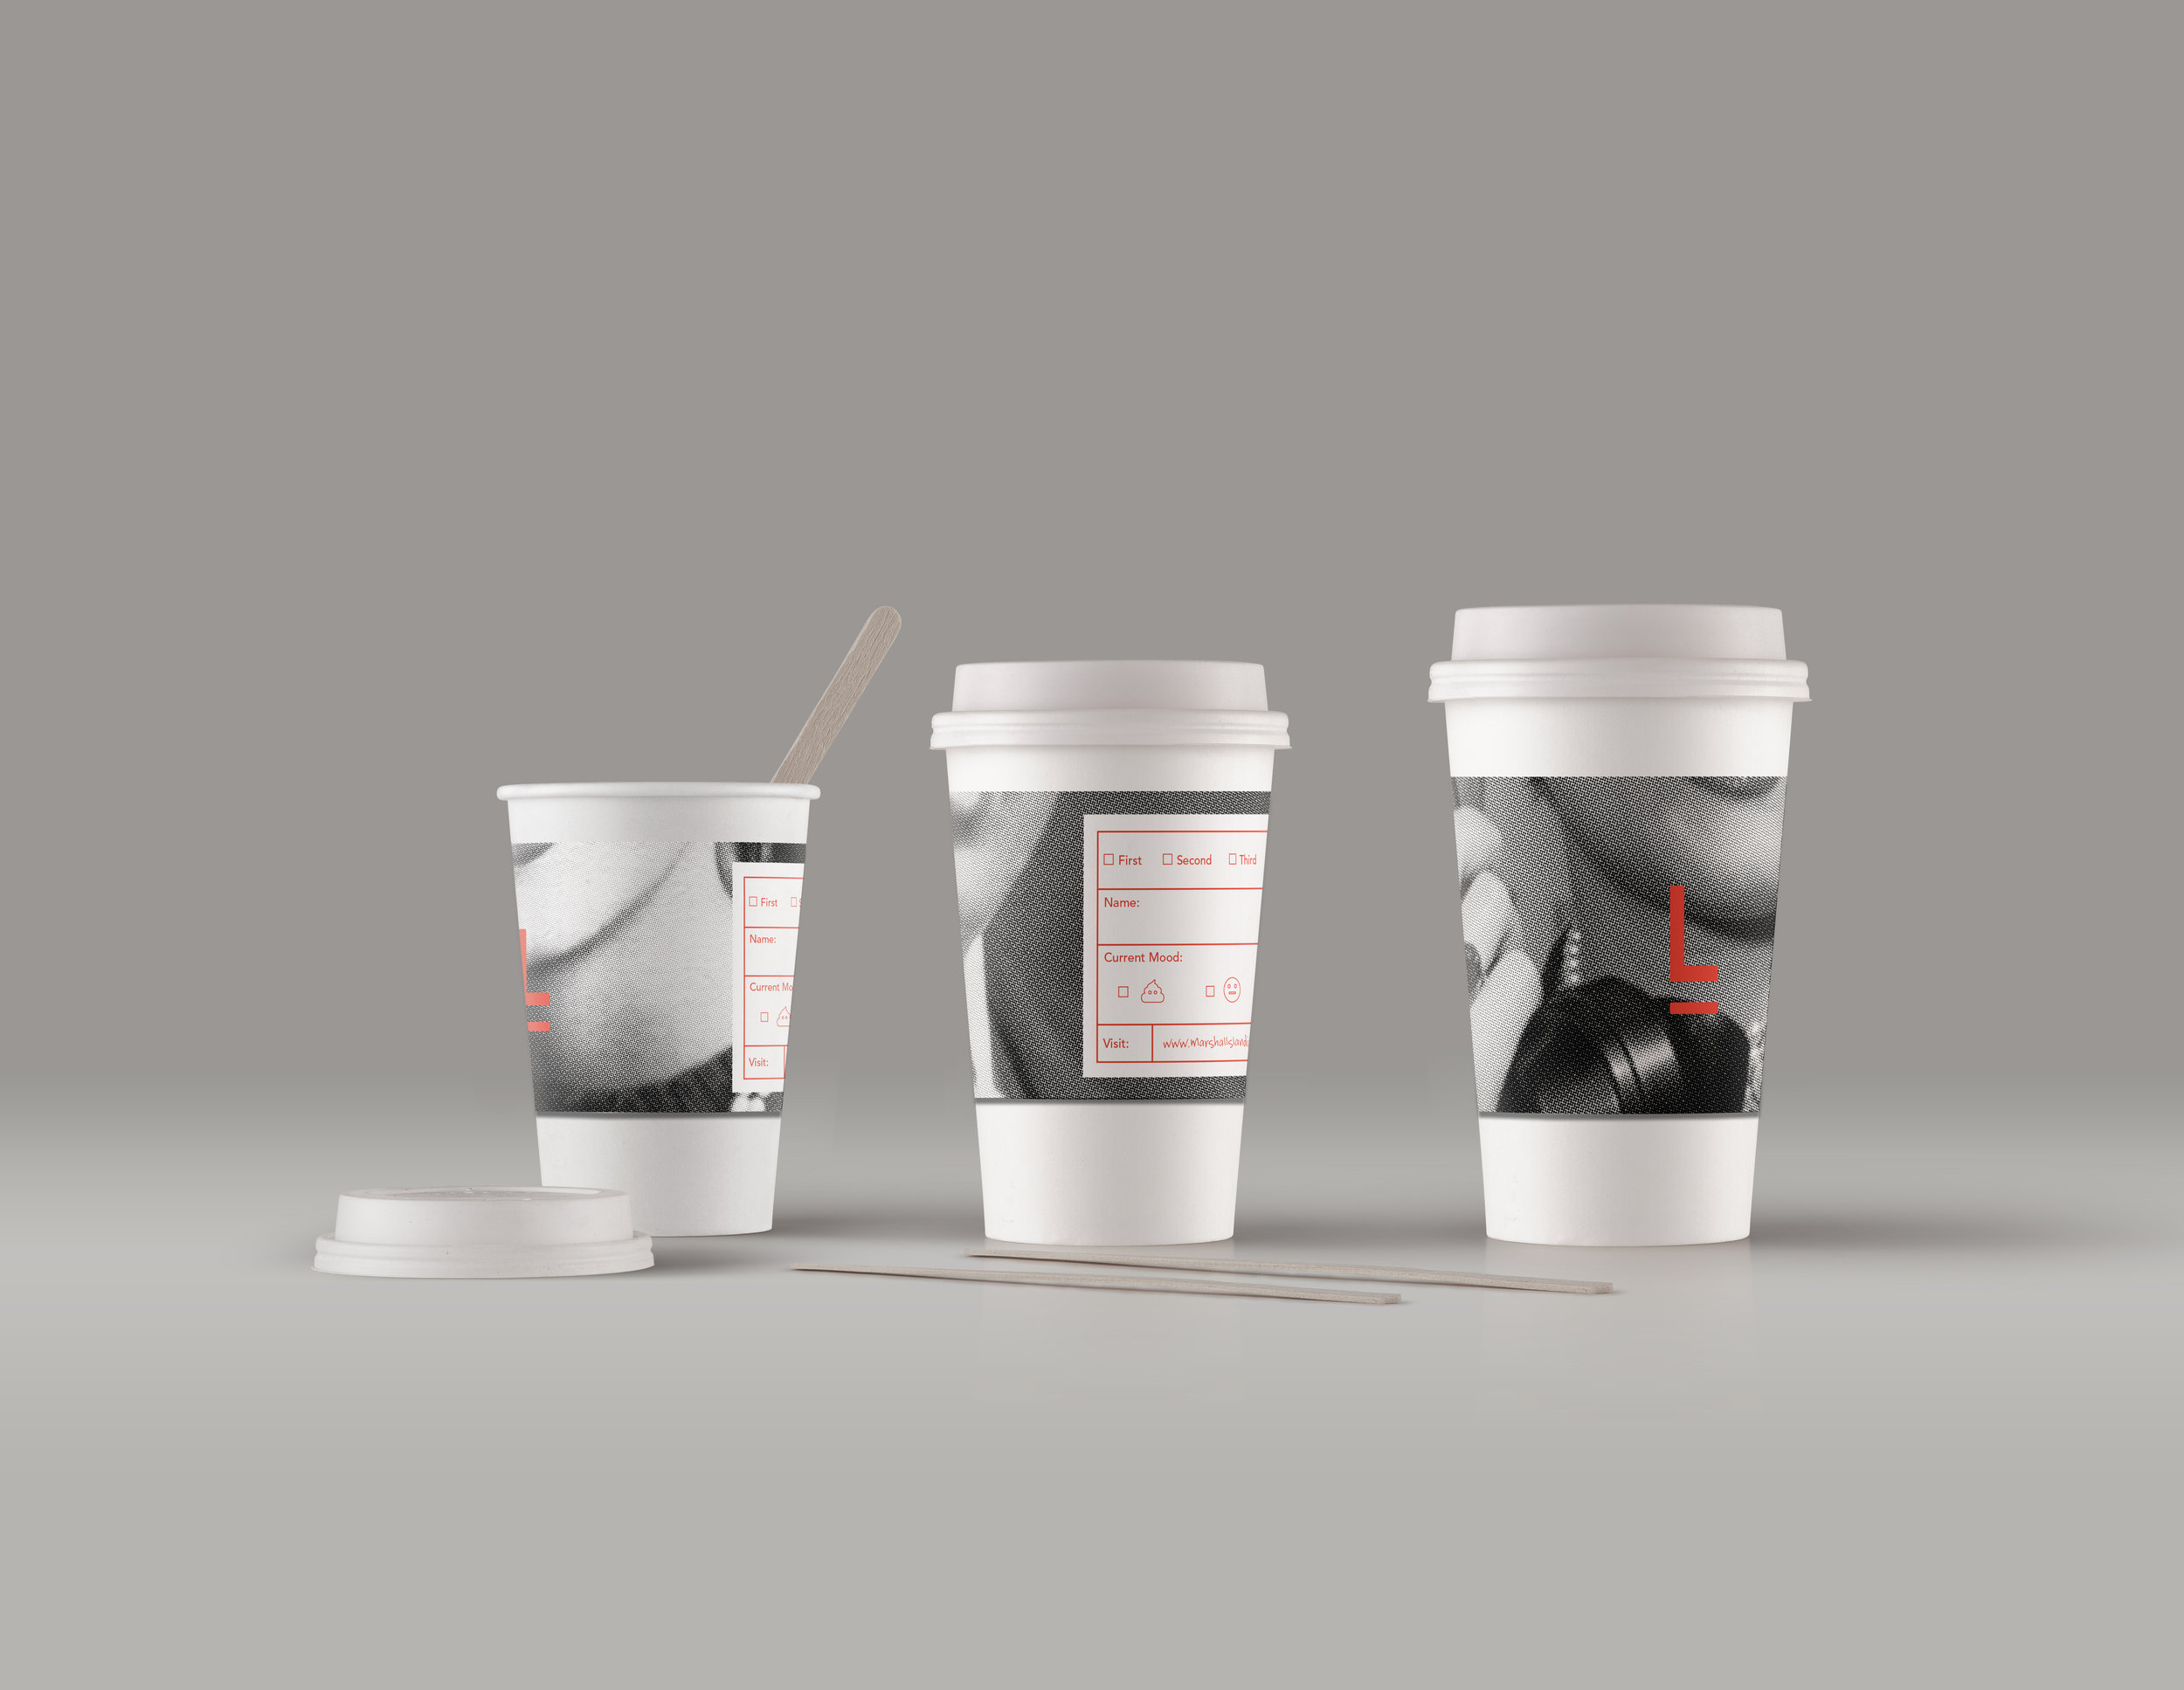 17-0405_Coffee Cups Render_Black Lid.jpg